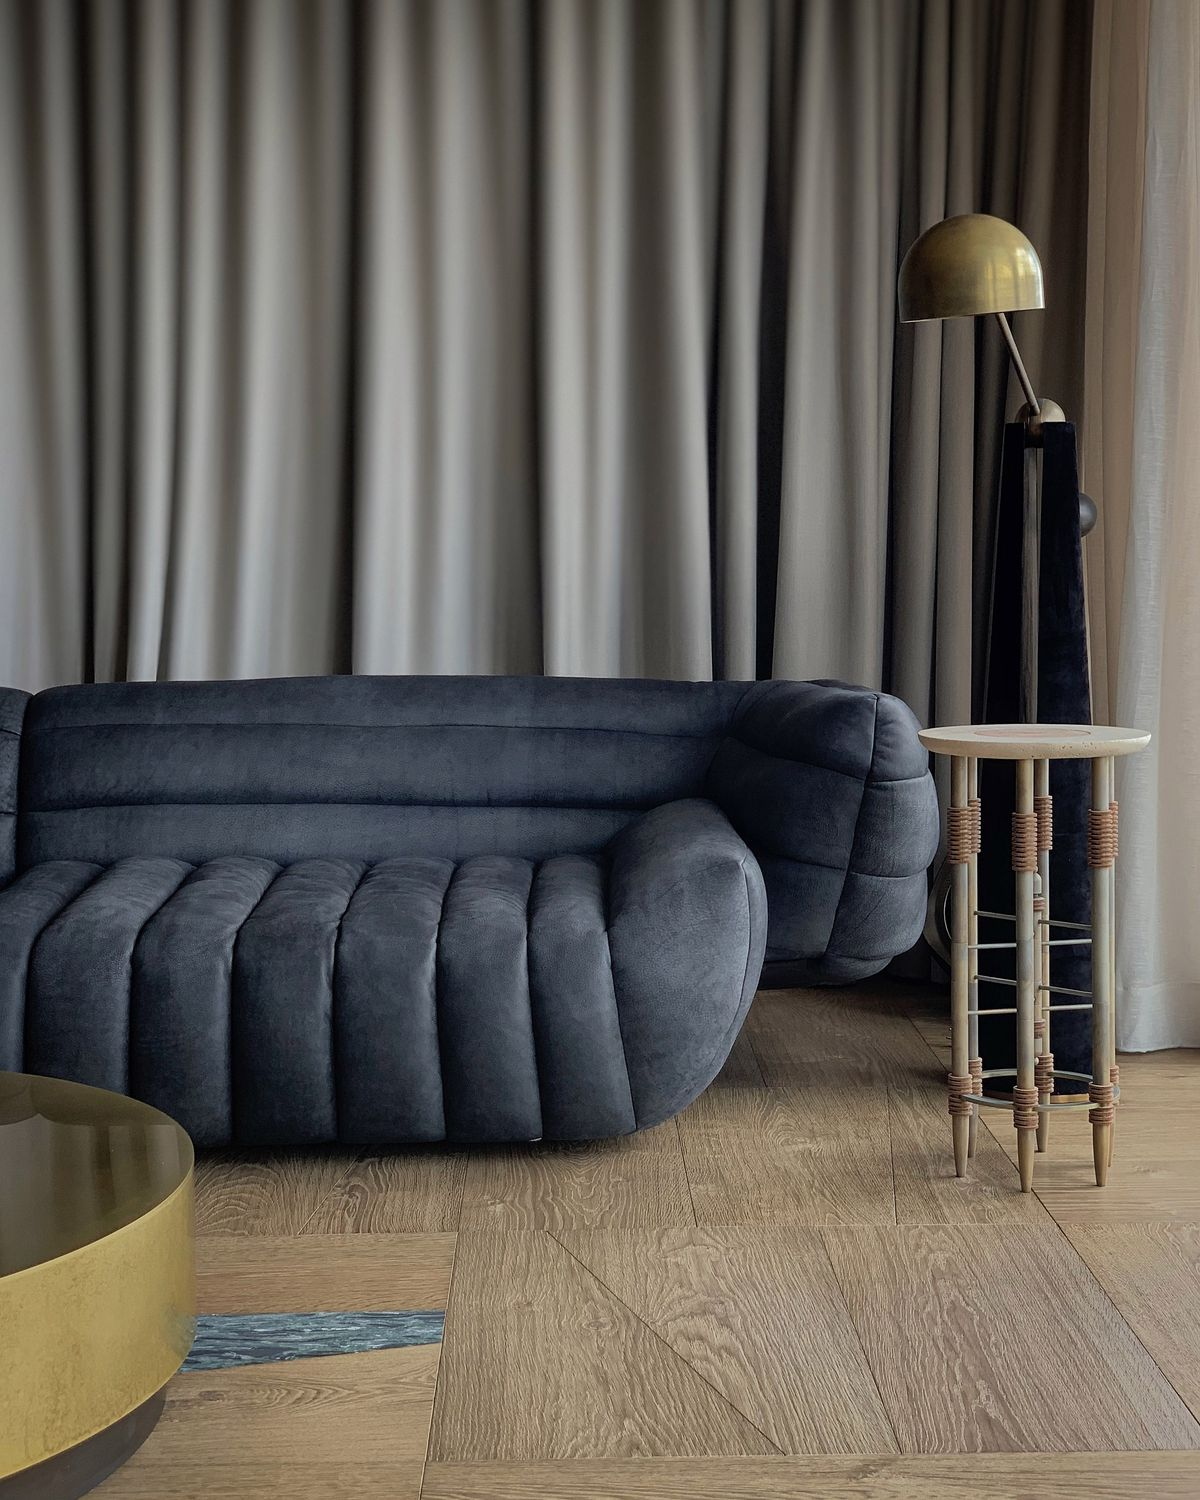 A plush dark gray couch against gray curtains.